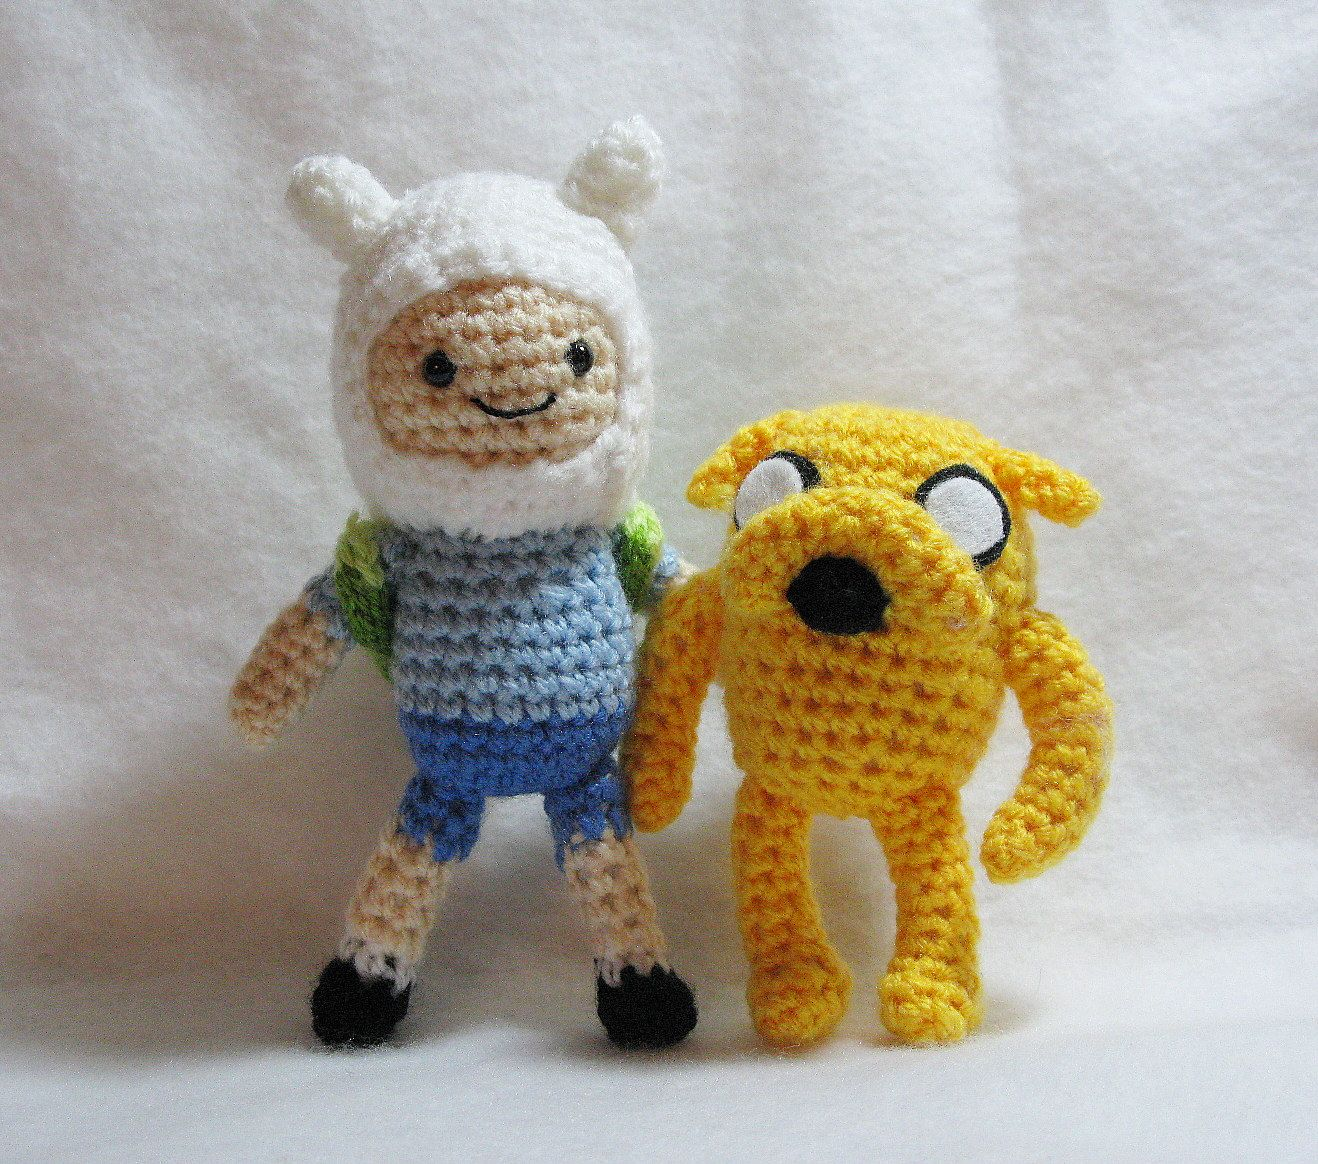 Adventure Time's Jake the Dog Character Hat Crochet Pattern » cRAfterchick  - Free Crochet Patterns and Projects | 1164x1318